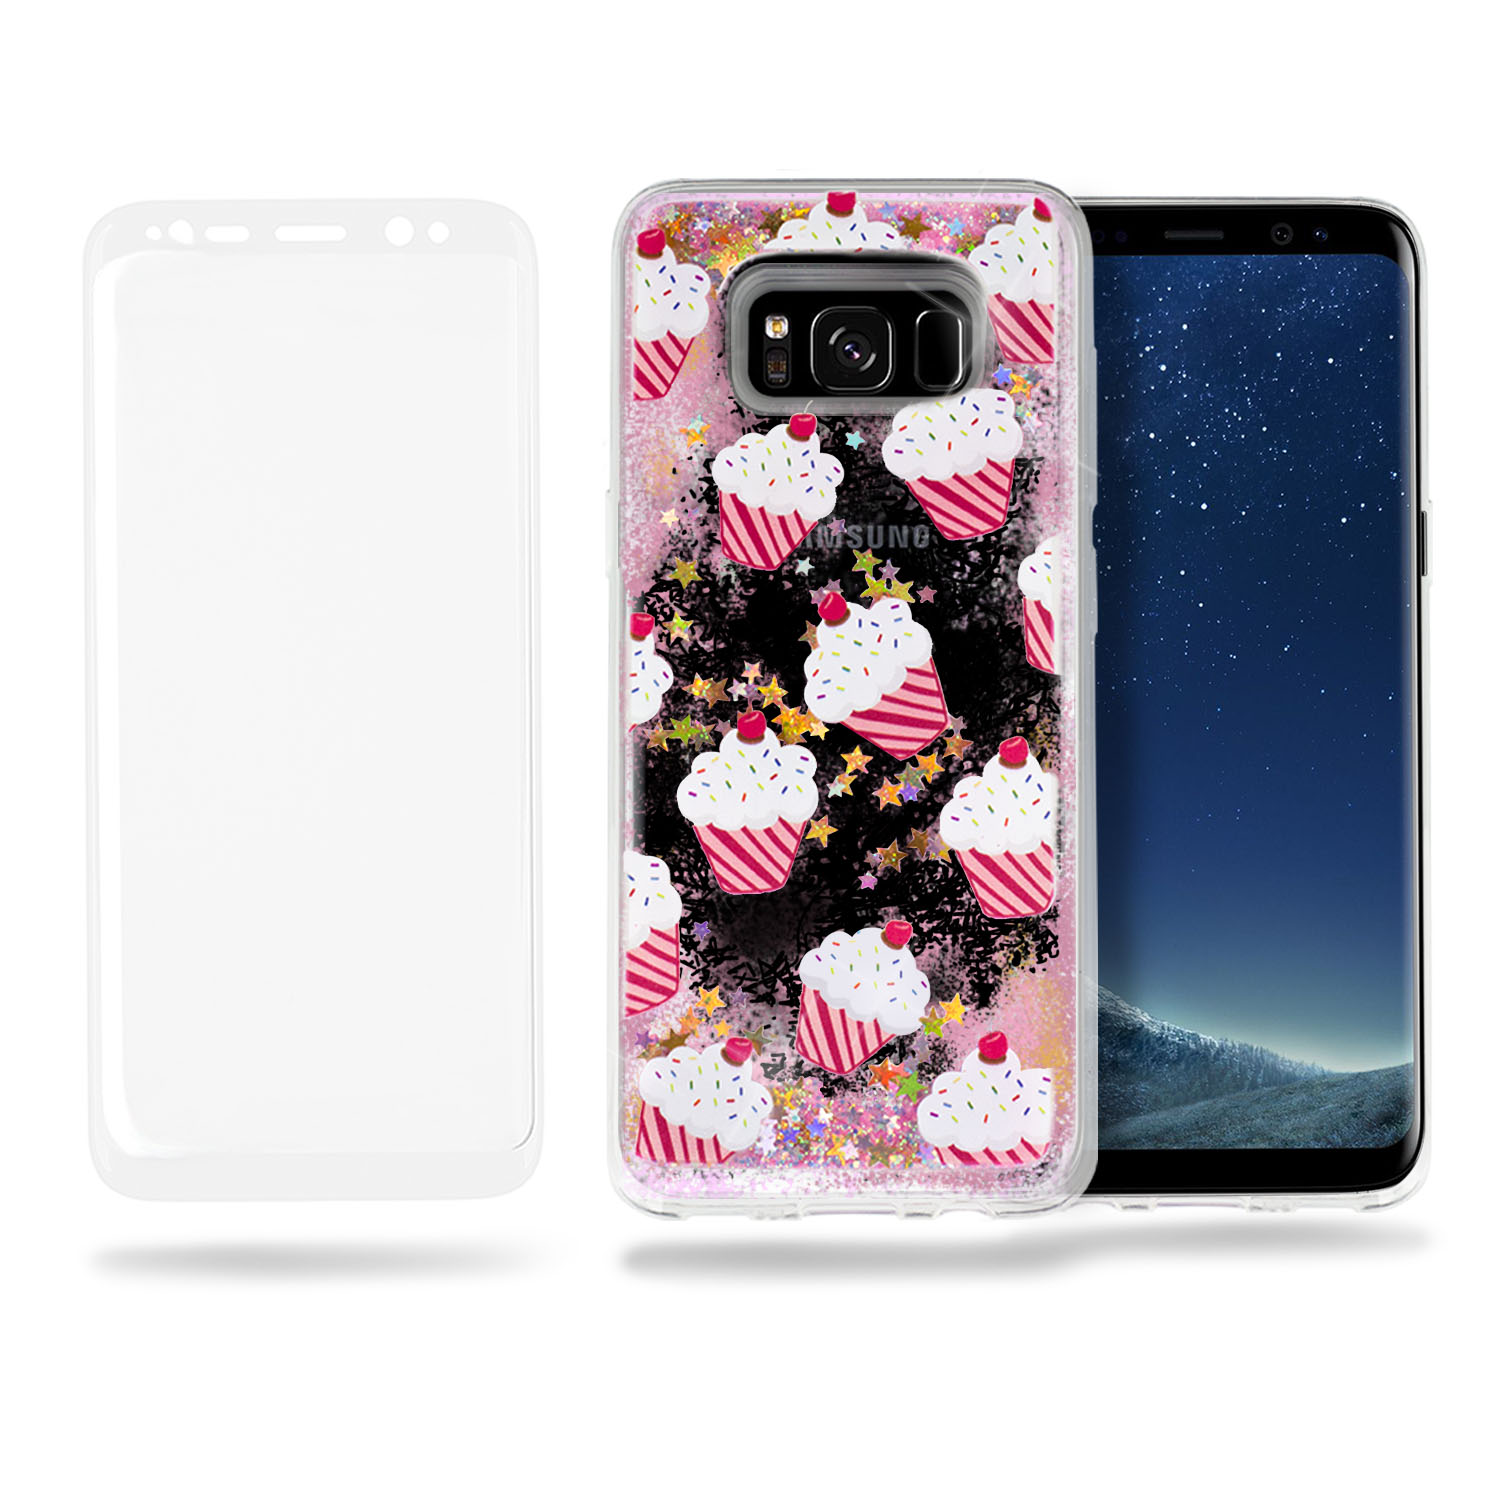 SOJITEK Liquid Case Glitter TPU Bumper Case for Samsung Galaxy S8 Parent